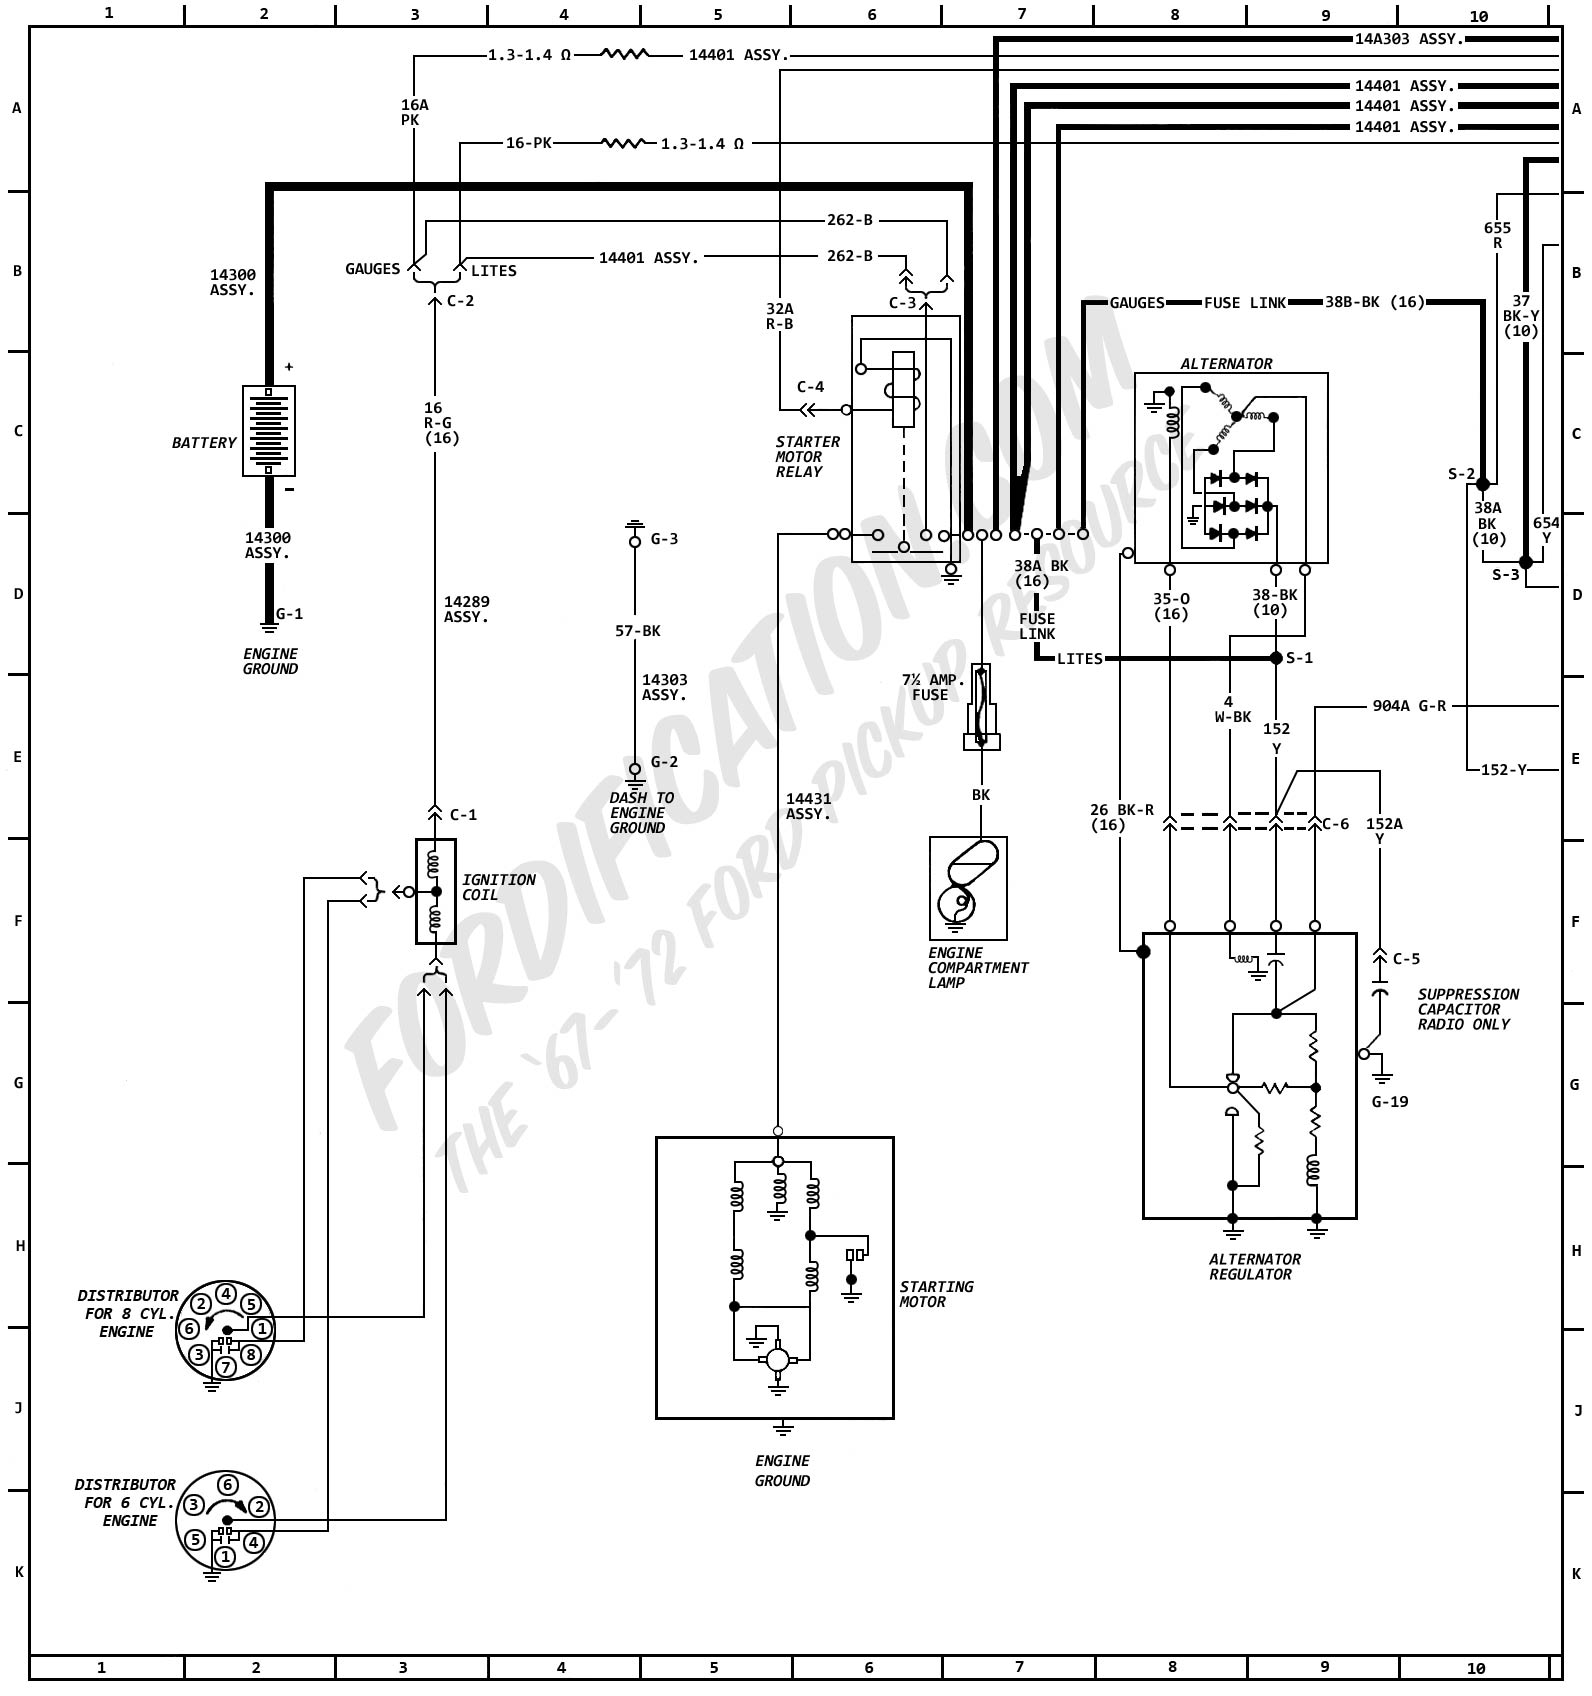 1972MasterWiring_01 1972 ford truck wiring diagrams fordification com  at edmiracle.co